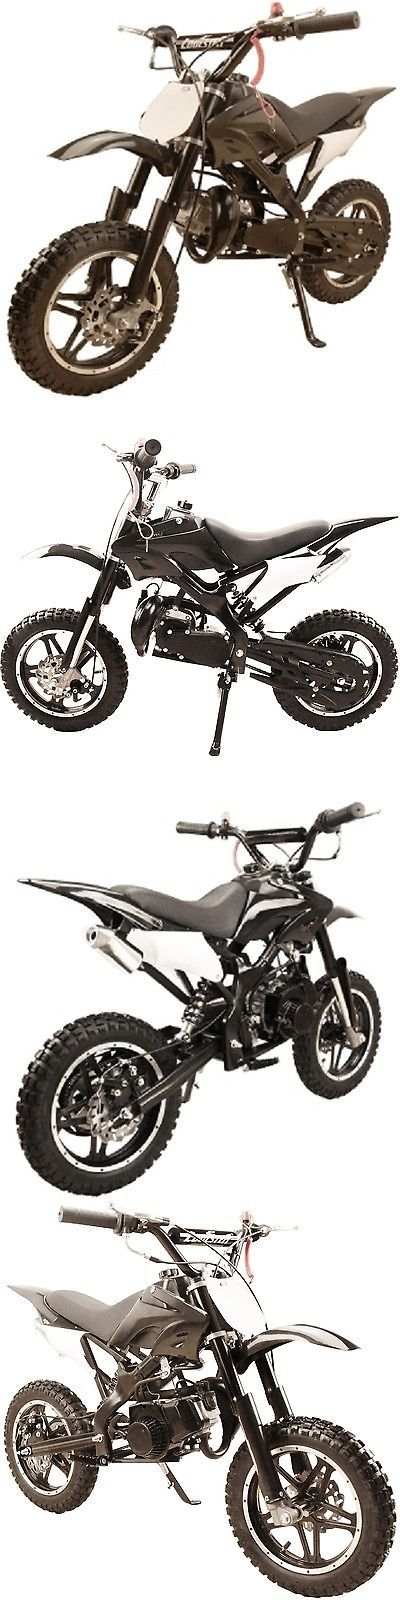 Gas Scooters 75211: Kids 49Cc 2-Stroke Mini Pocket Dirt Bike Gas Power Motor - Free Shipping - Black -> BUY IT NOW ONLY: $369.99 on eBay!